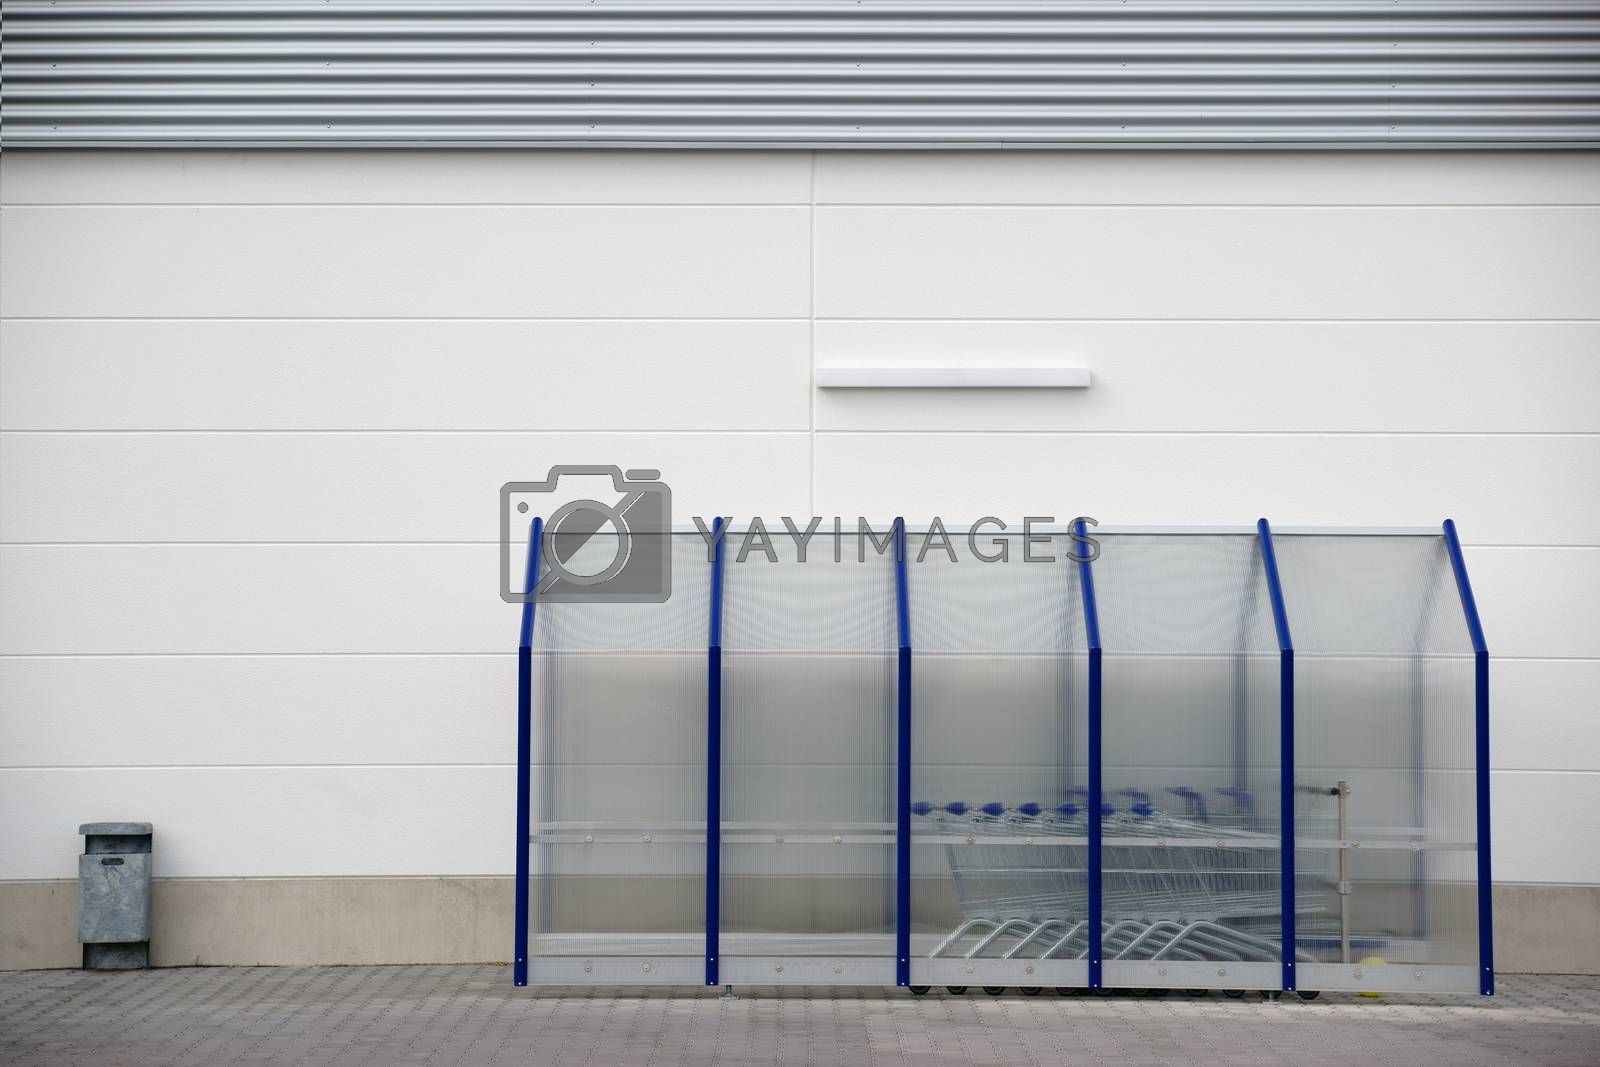 A plastic shelter with shopping baskets and a garbage container on the wall of a shopping mall.